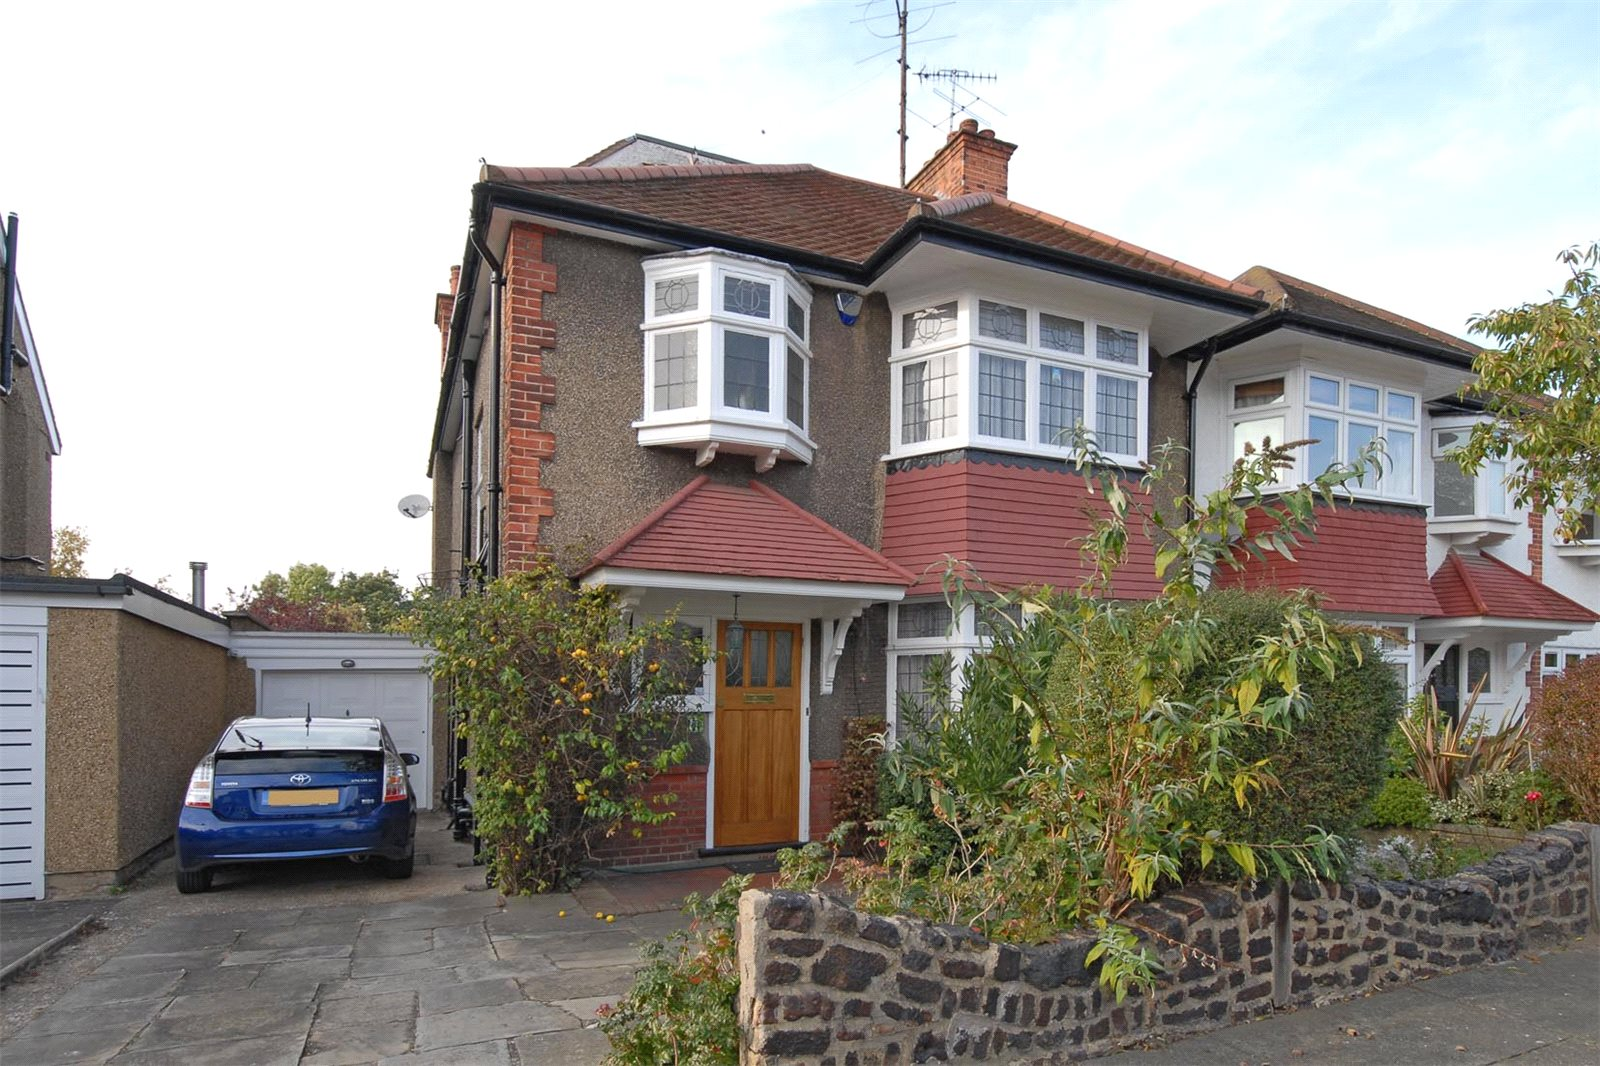 4 Bedrooms Semi Detached House for sale in Claremont Park Finchley London N3